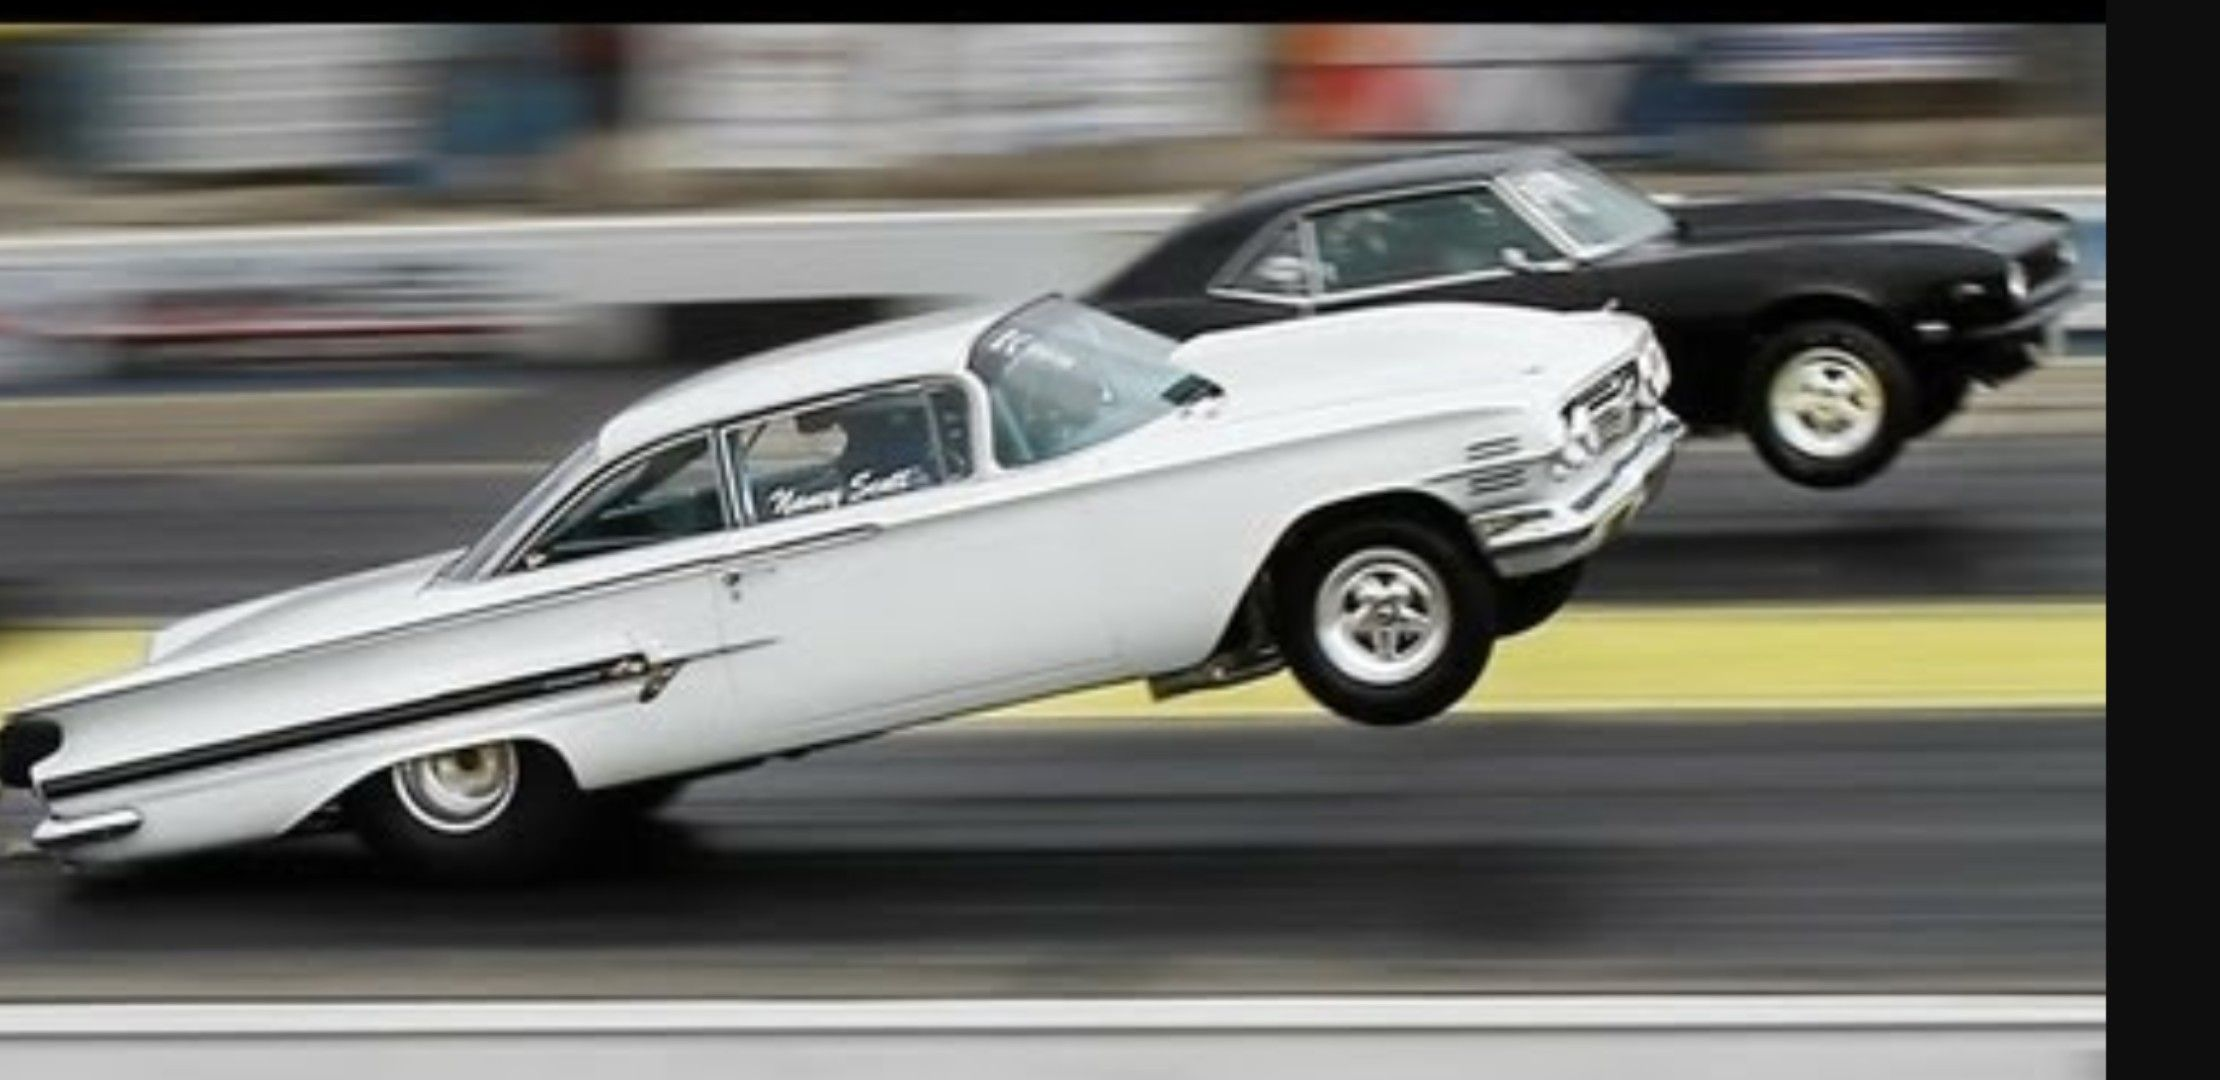 Pin By Richard Roule On Wtf Pinterest Cars Car Man Cave And